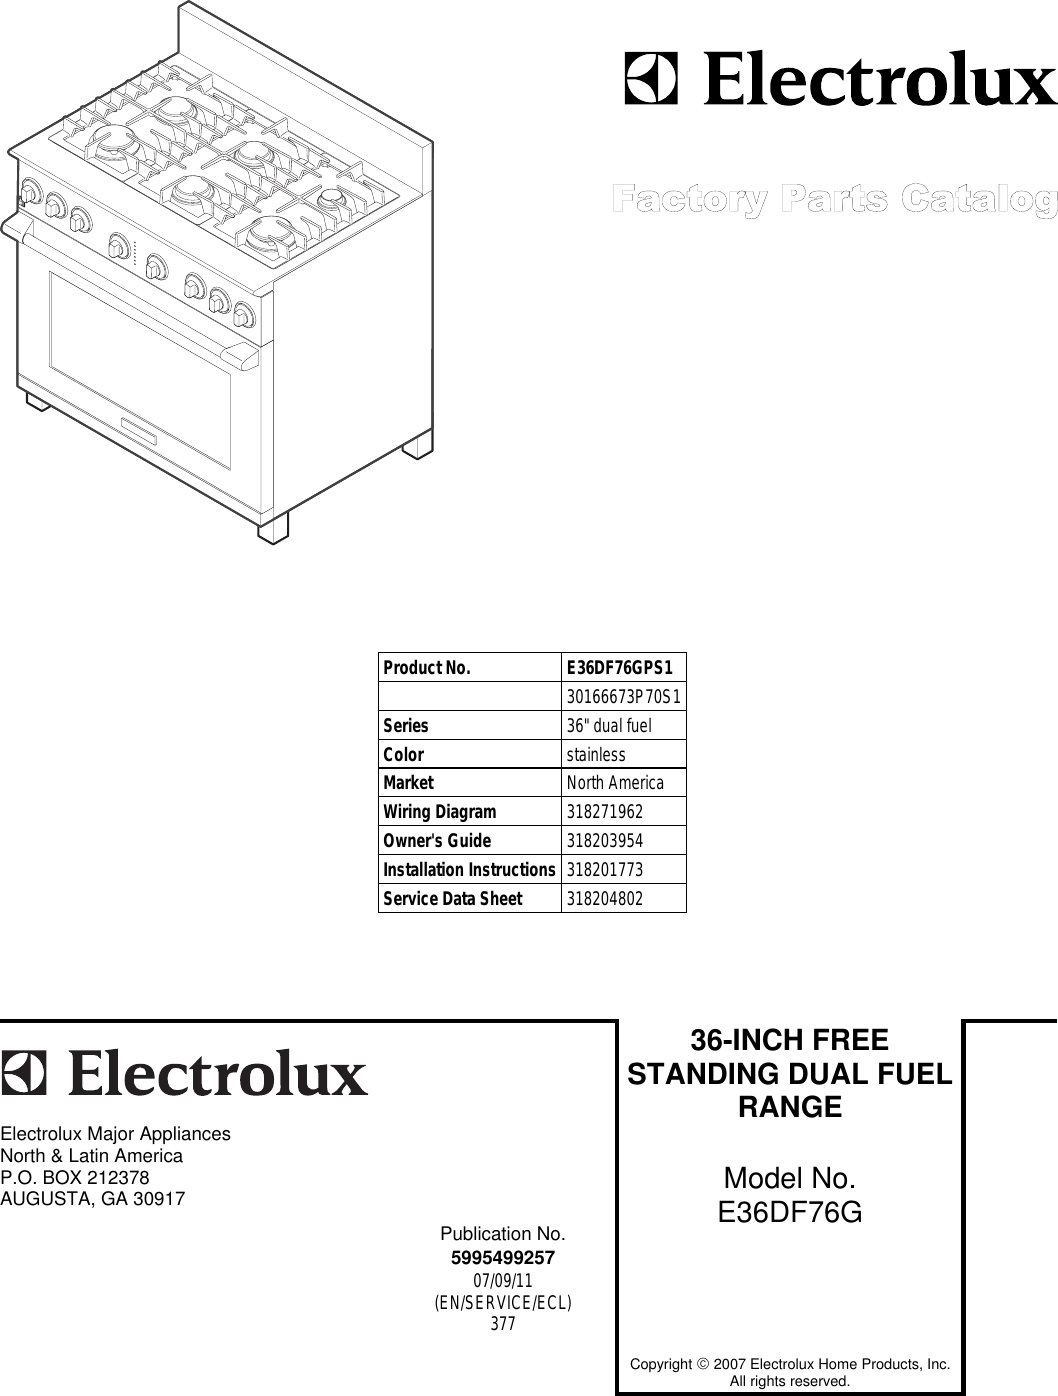 Fine electrolux wiring diagram adornment best images for wiring